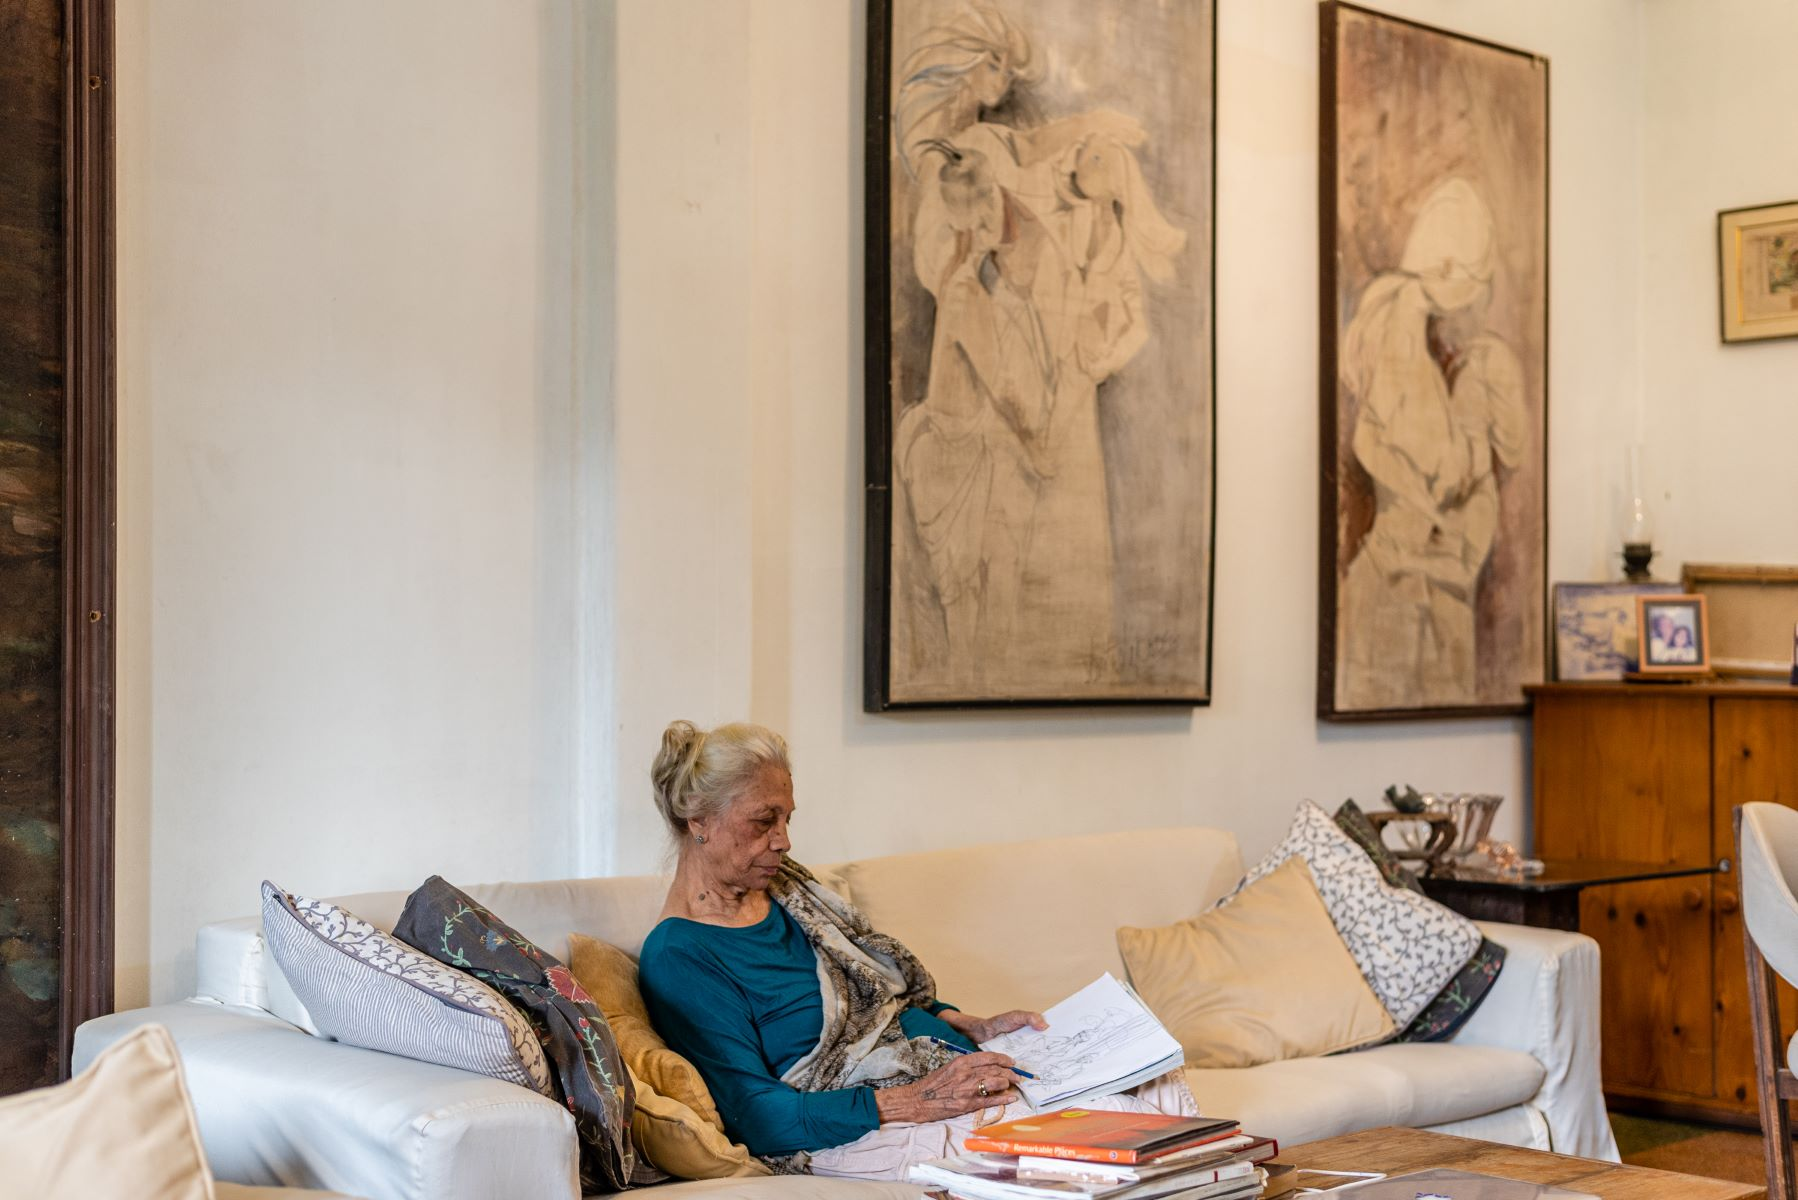 Dr. Kapoor sketching in her living room in Mumbai.